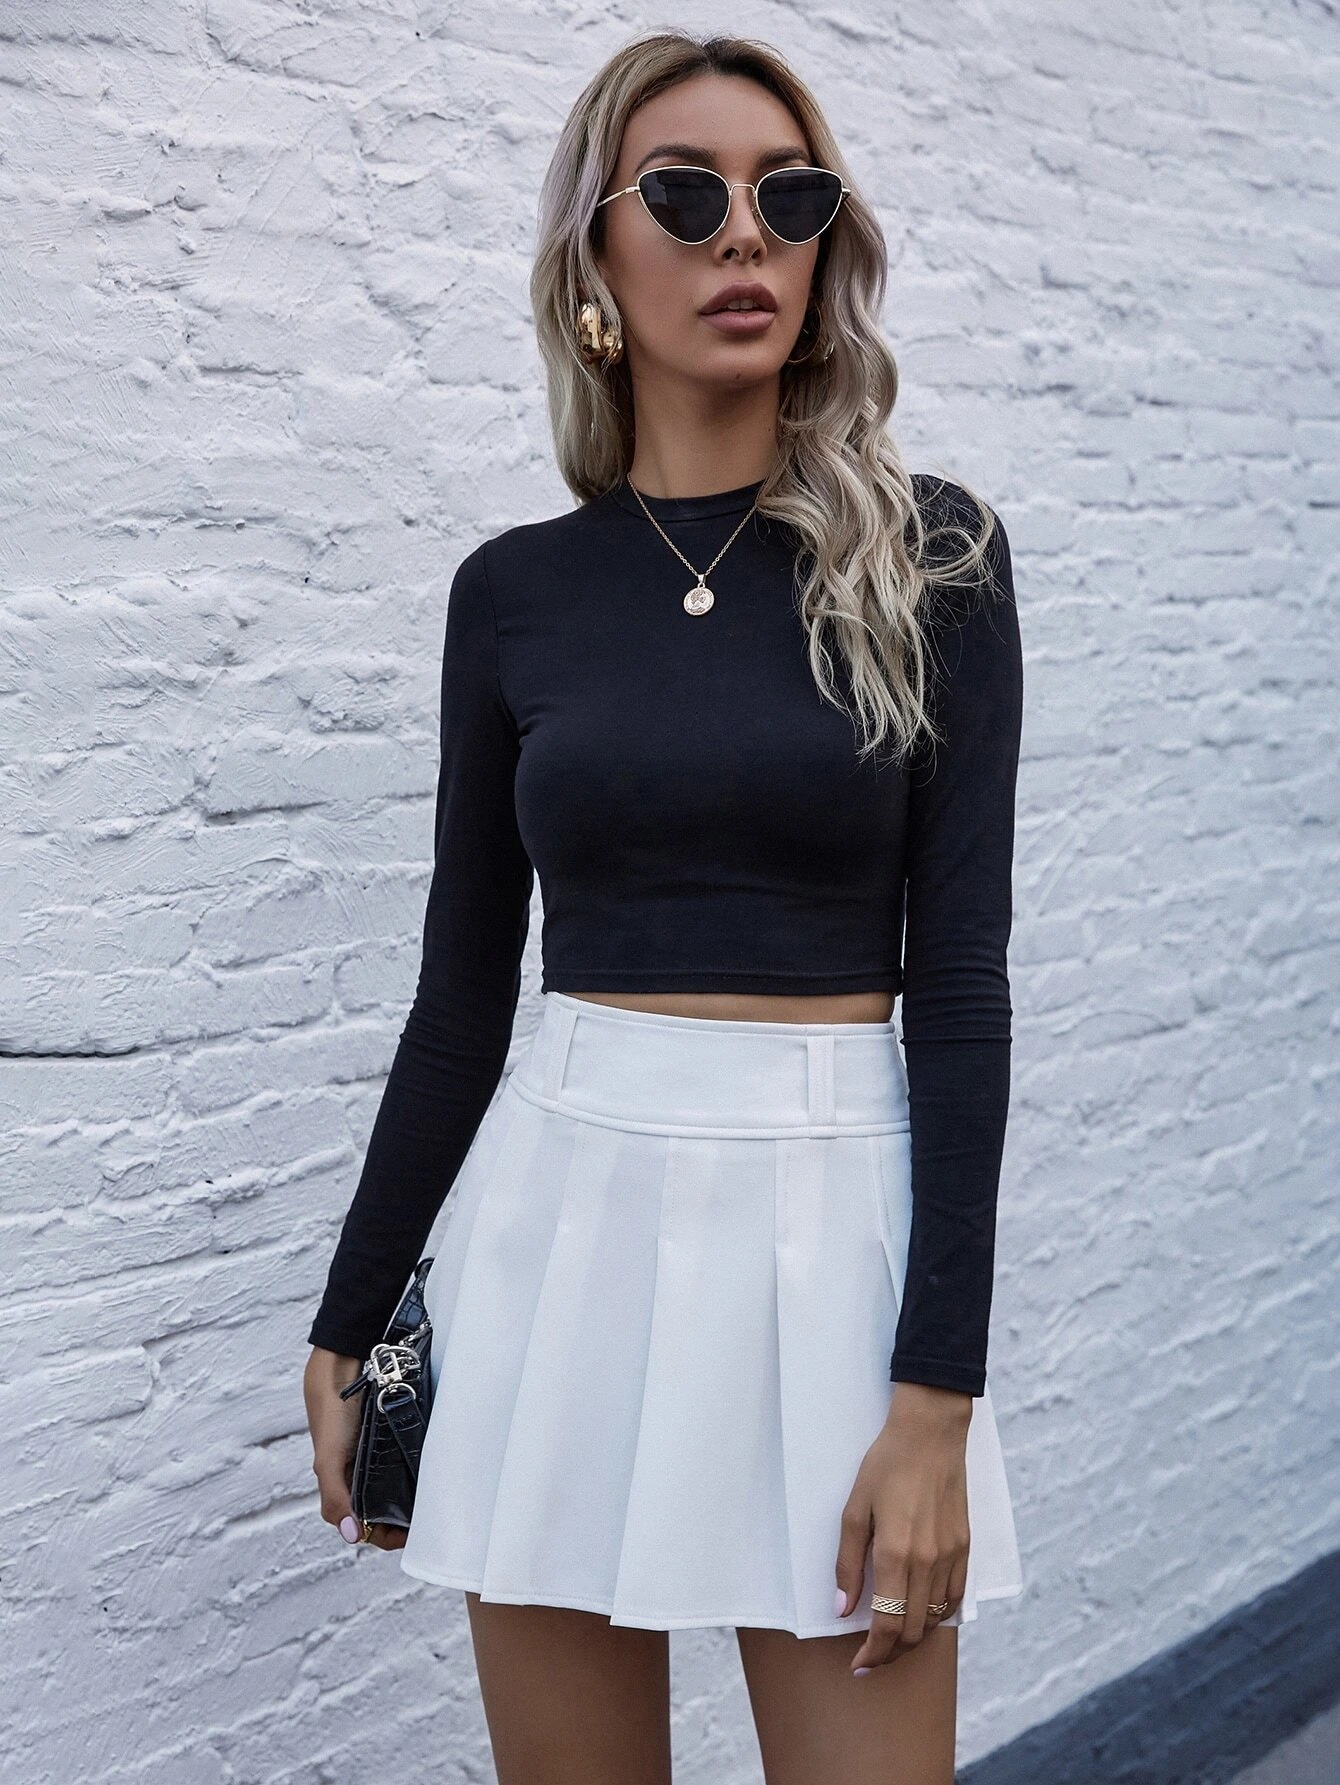 White tennis skirt outfits